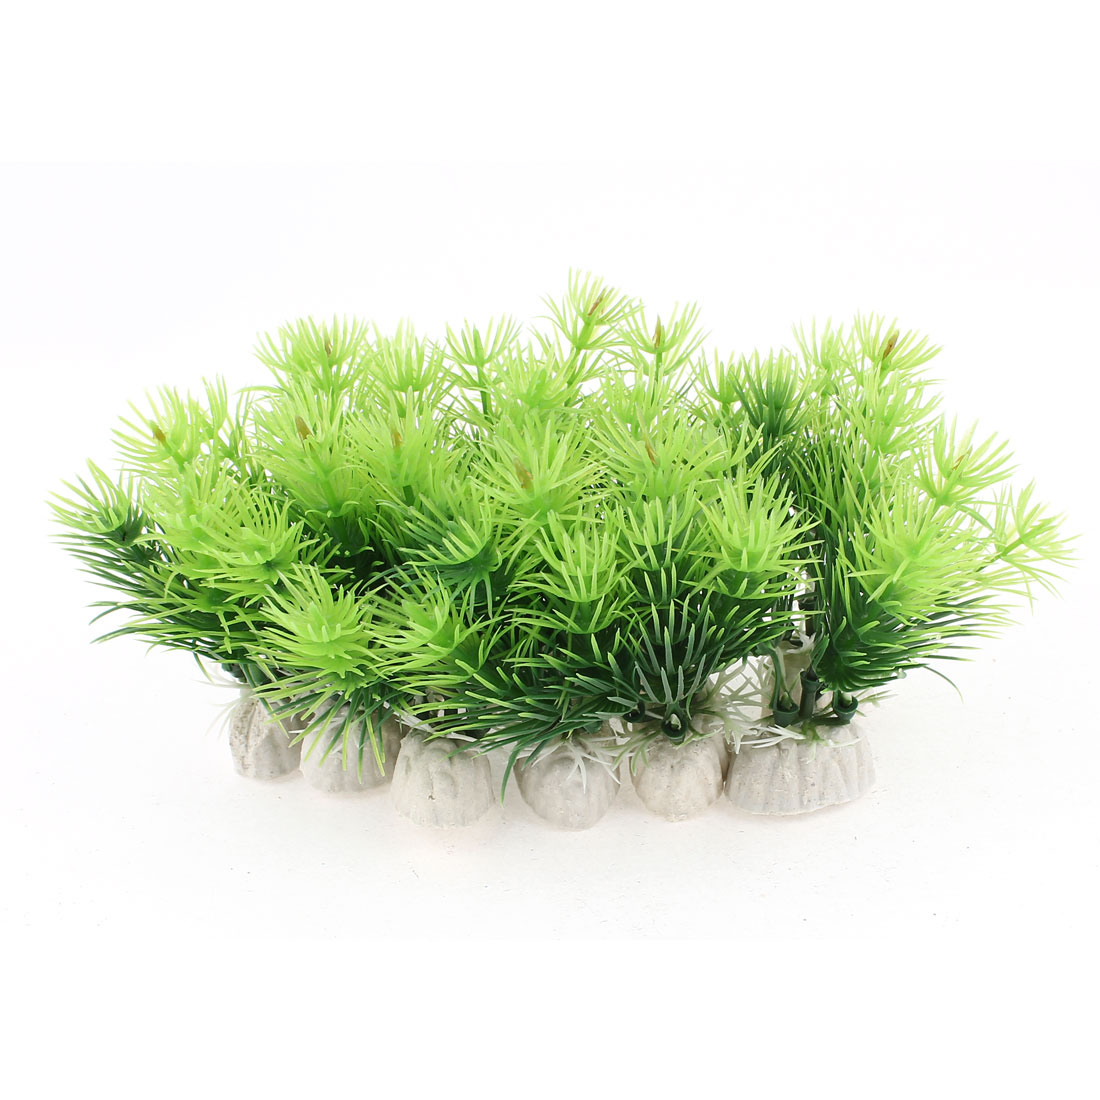 10pcs Green Plastic Emulation Plants Ceramic Base Aquarium Fish Tank Decoration